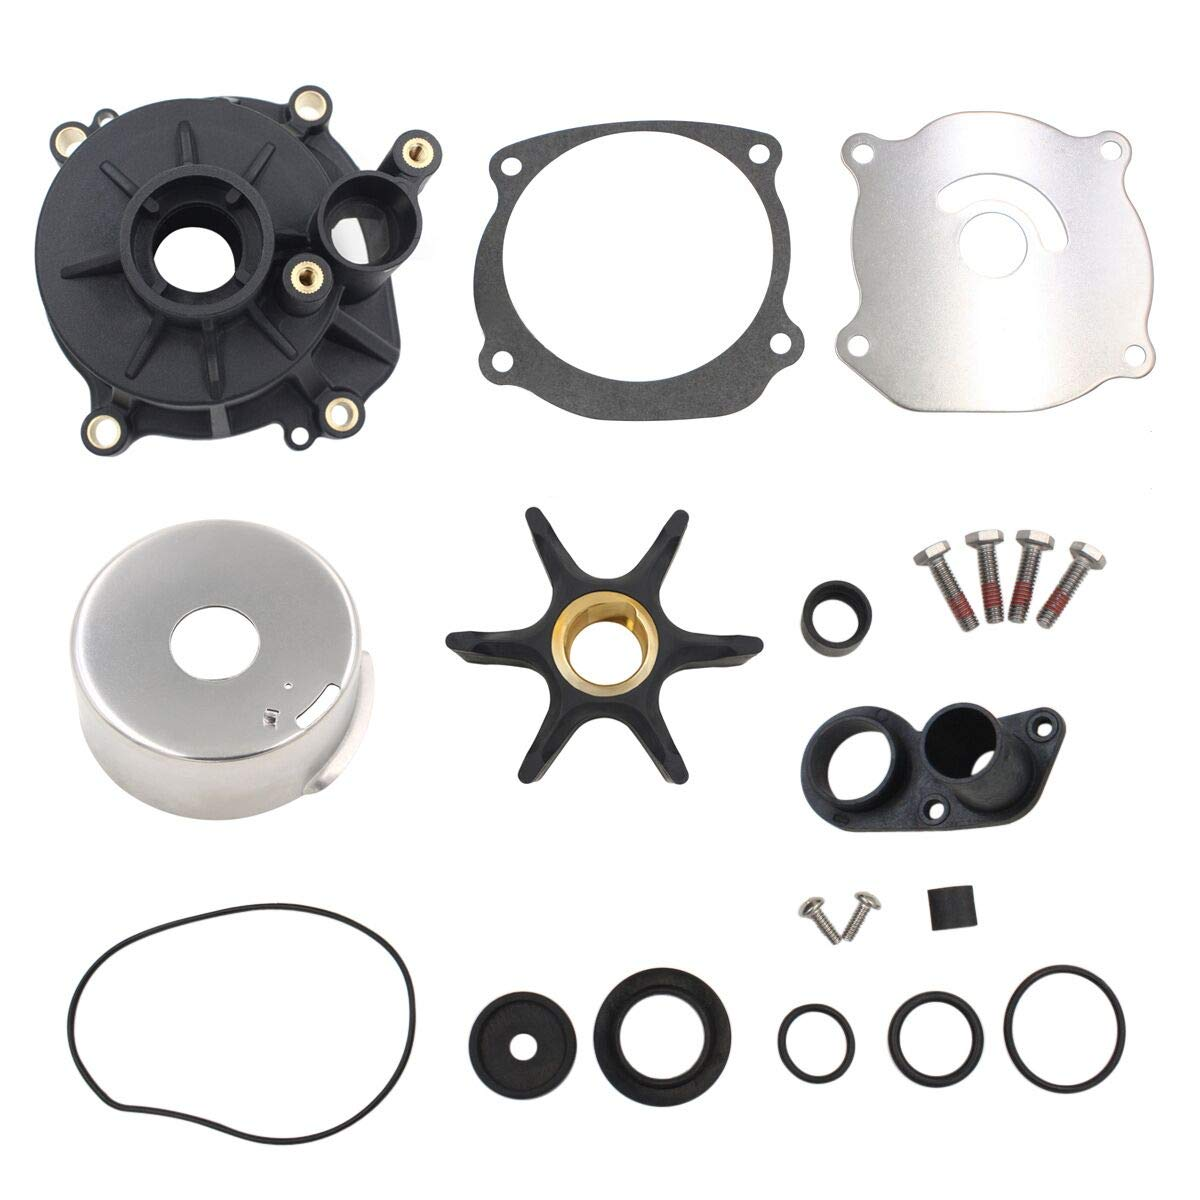 UANOFCN 5001594 Water Pump Kit for Johnson Evinrude OMC Outboard 85-300 Horsepower Boat Motors by UANOFCN